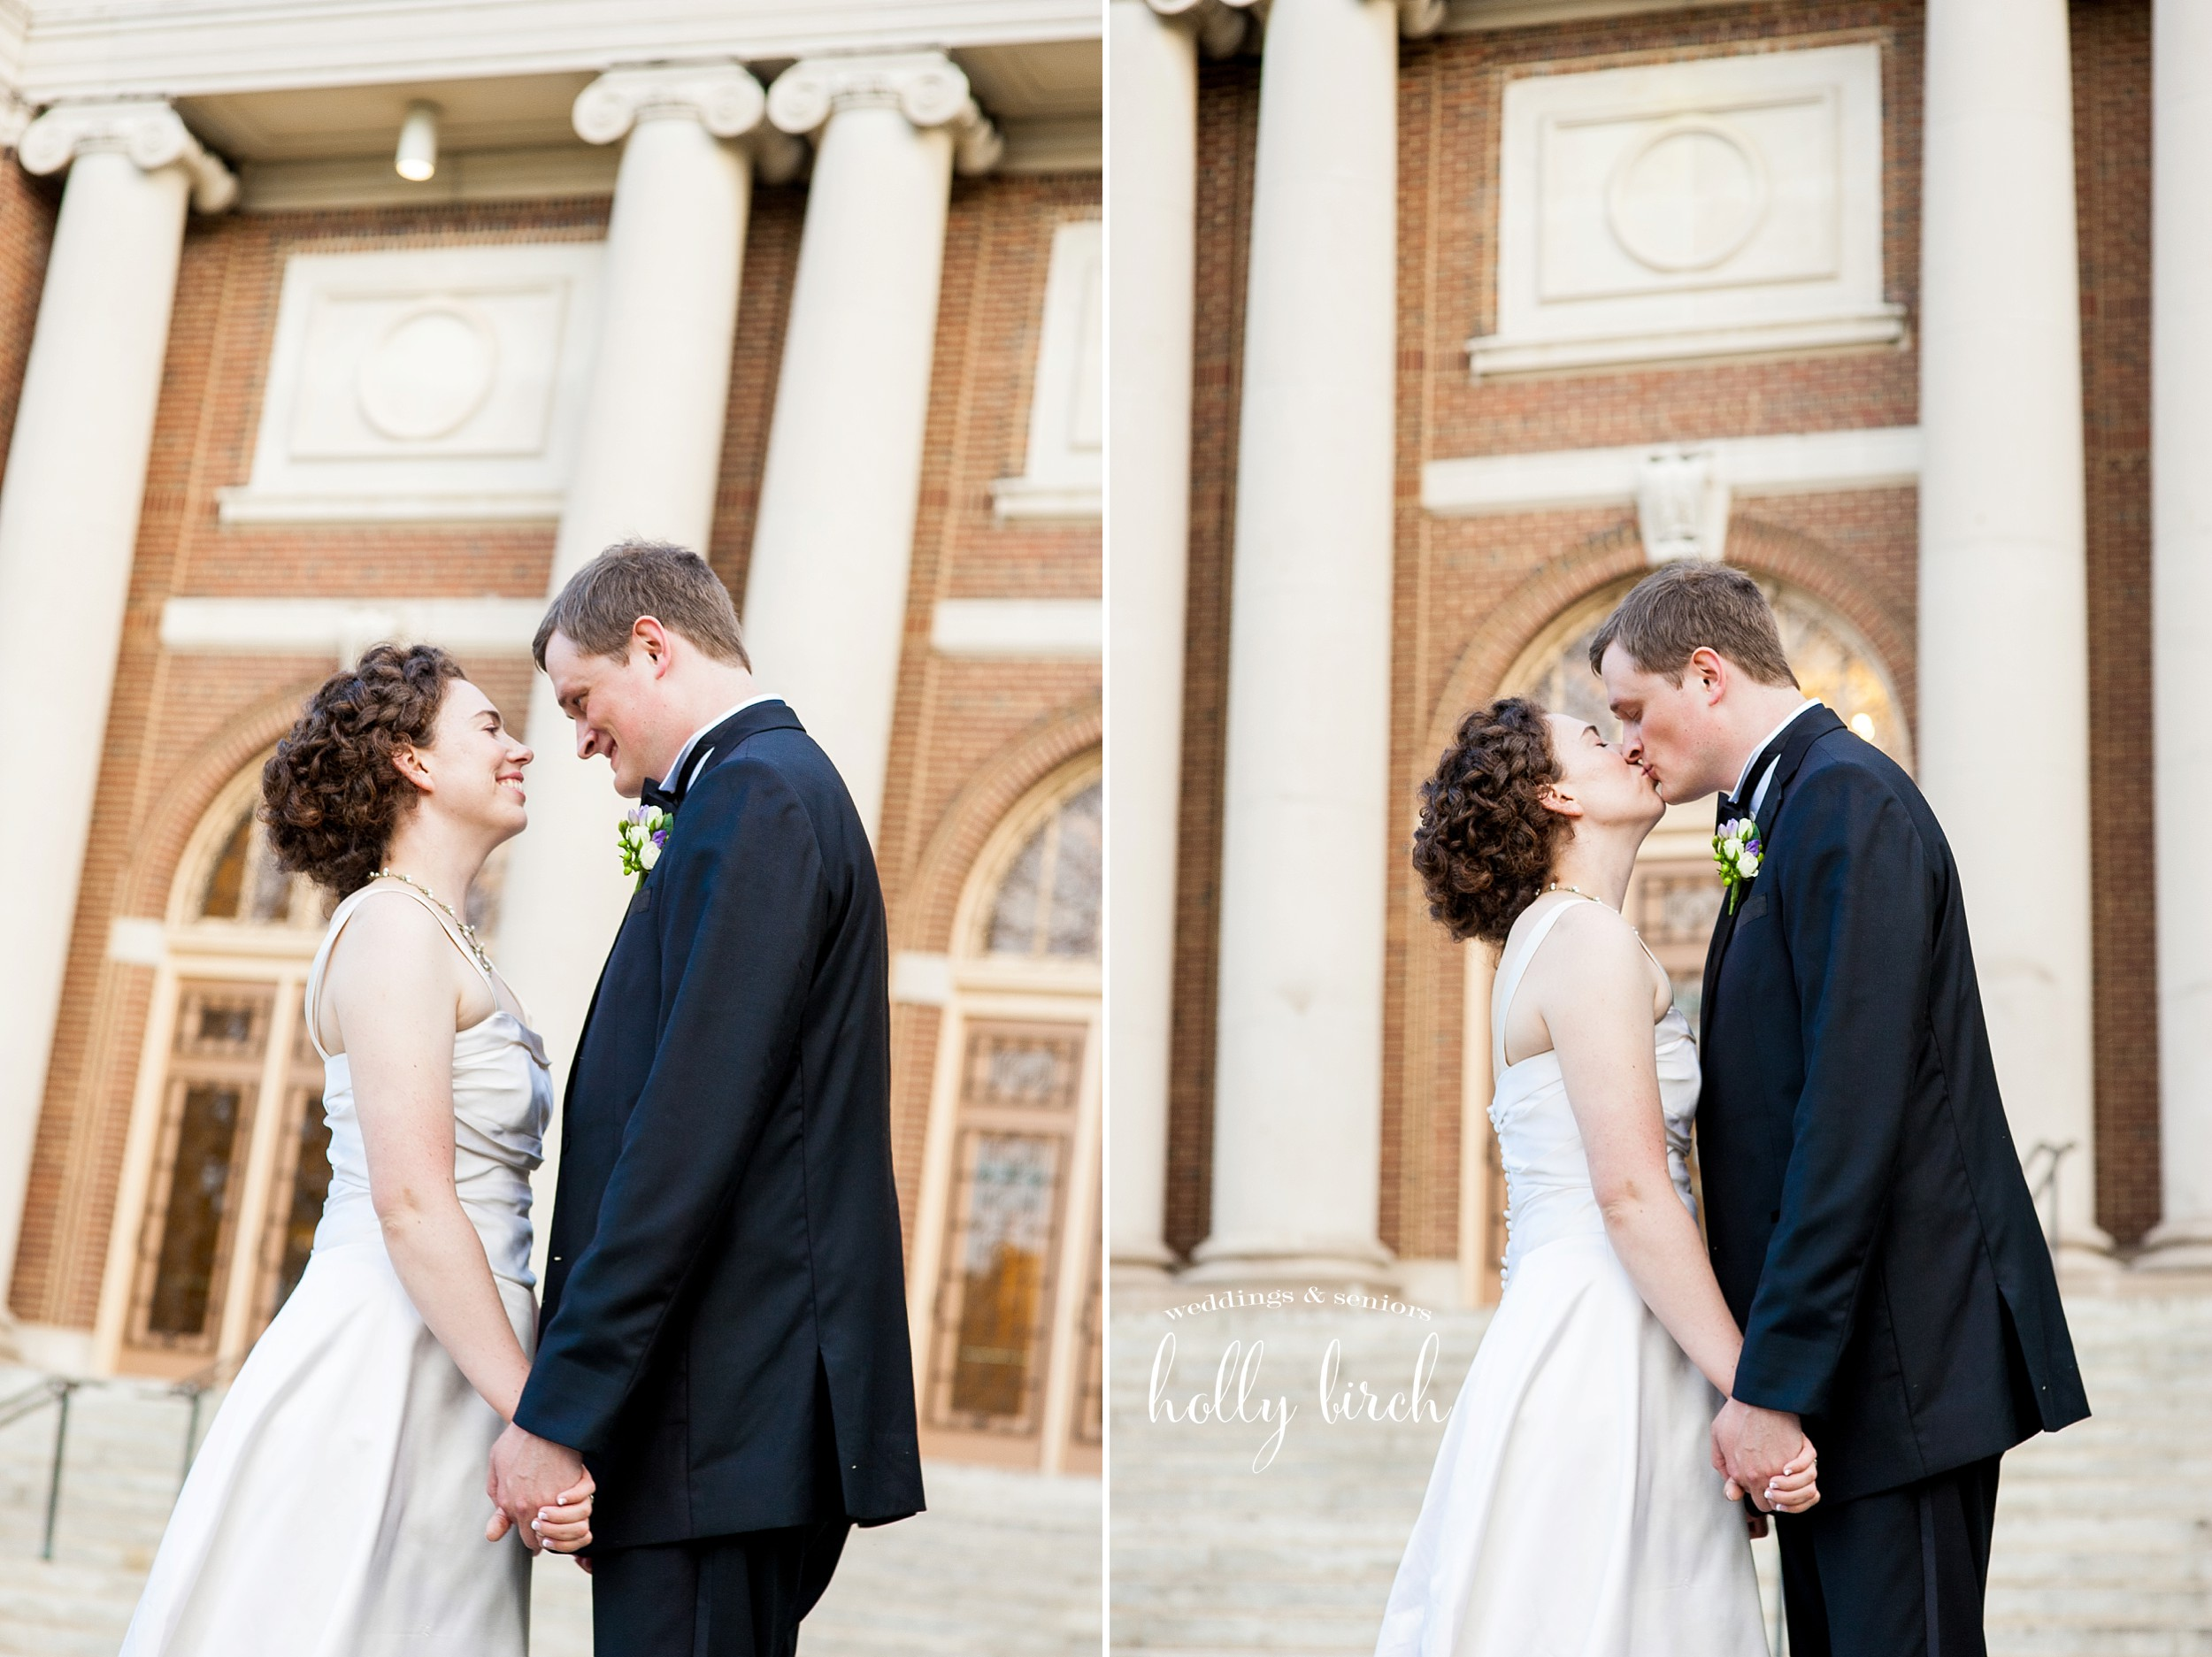 Foellinger Auditorium wedding portraits